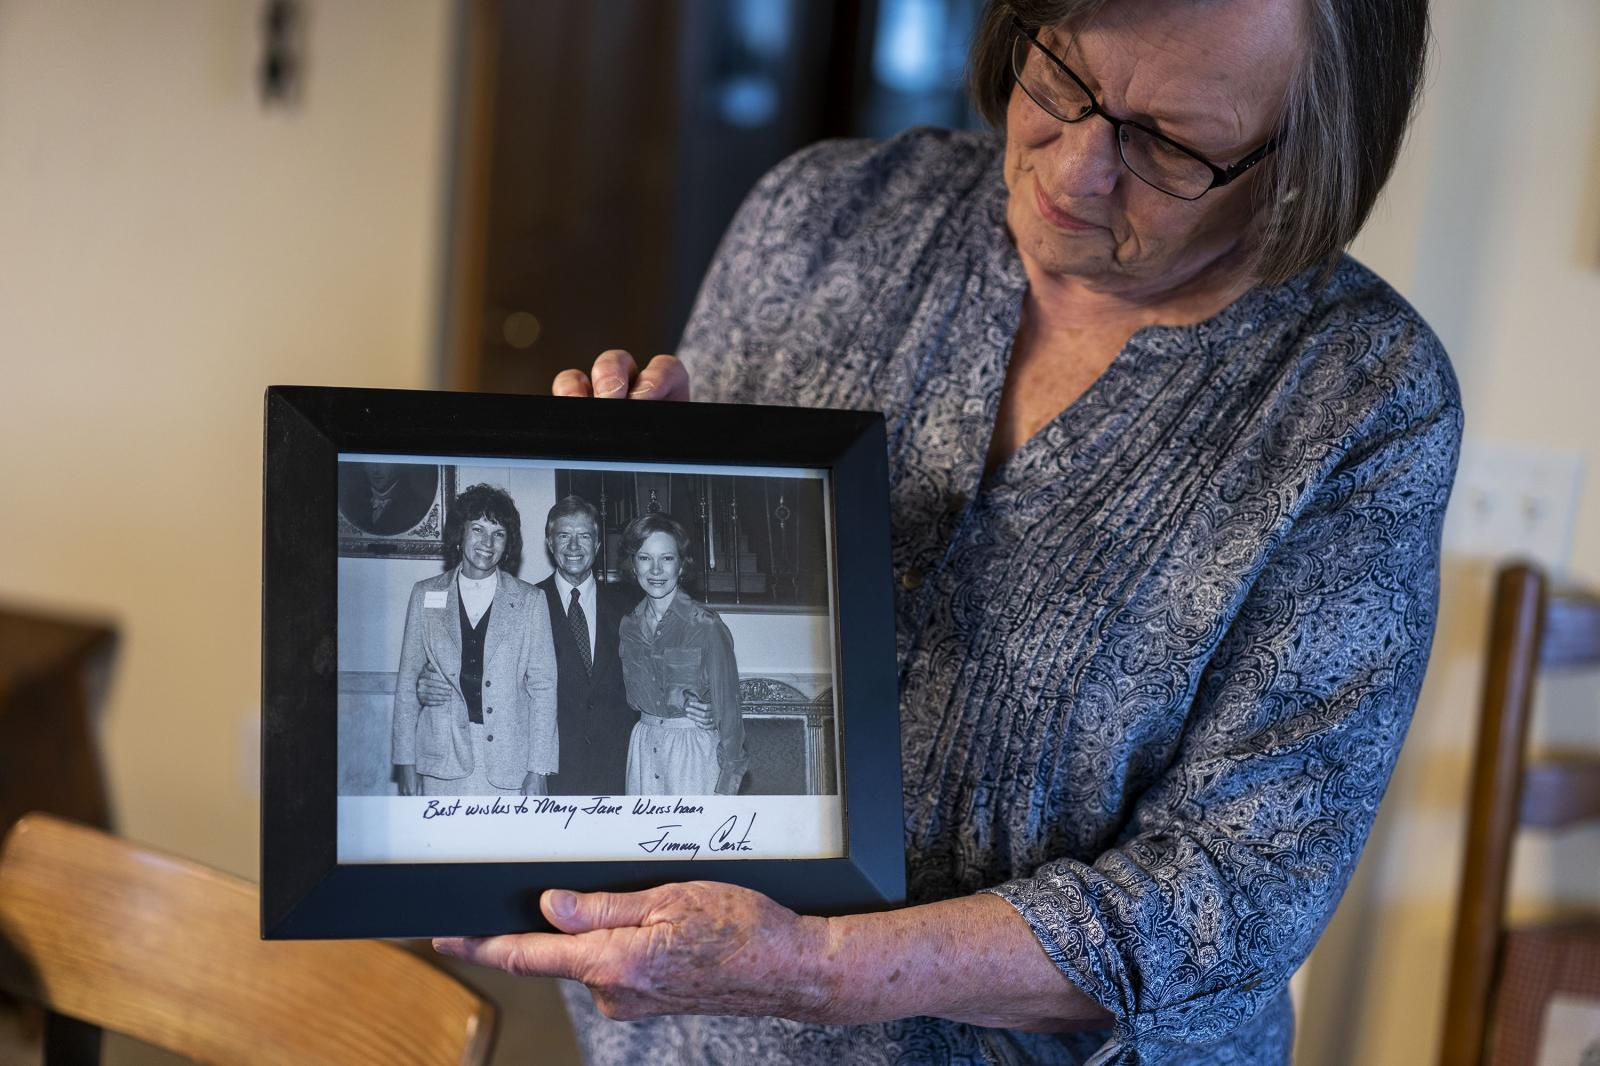 Mary Jane Weisshaar holds a photograph of her with president Jimmy Carter at her home in Creston, Iowa on Thursday, December 12, 2019. KC McGinnis for La Croix L'Hebdo